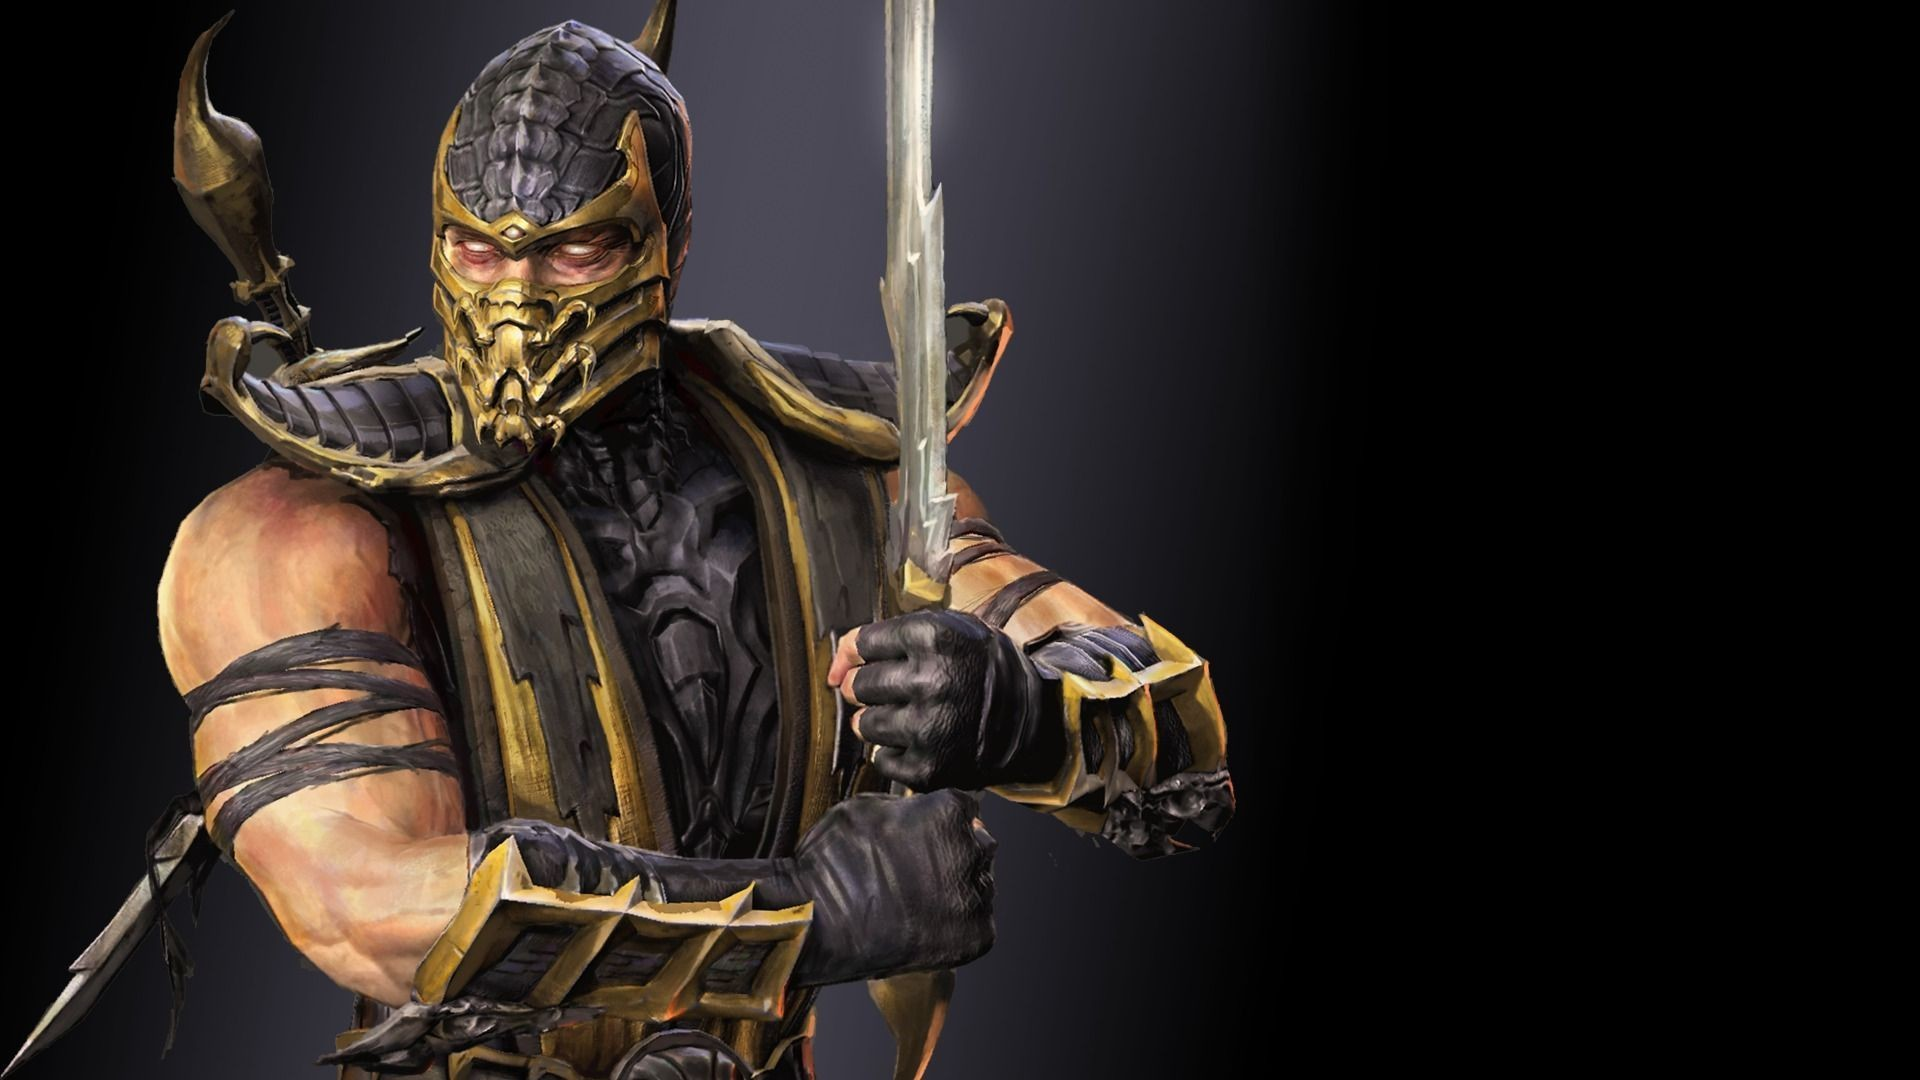 Mortal kombat x scorpion wallpapers 74 images - Mortal kombat scorpion wallpaper ...